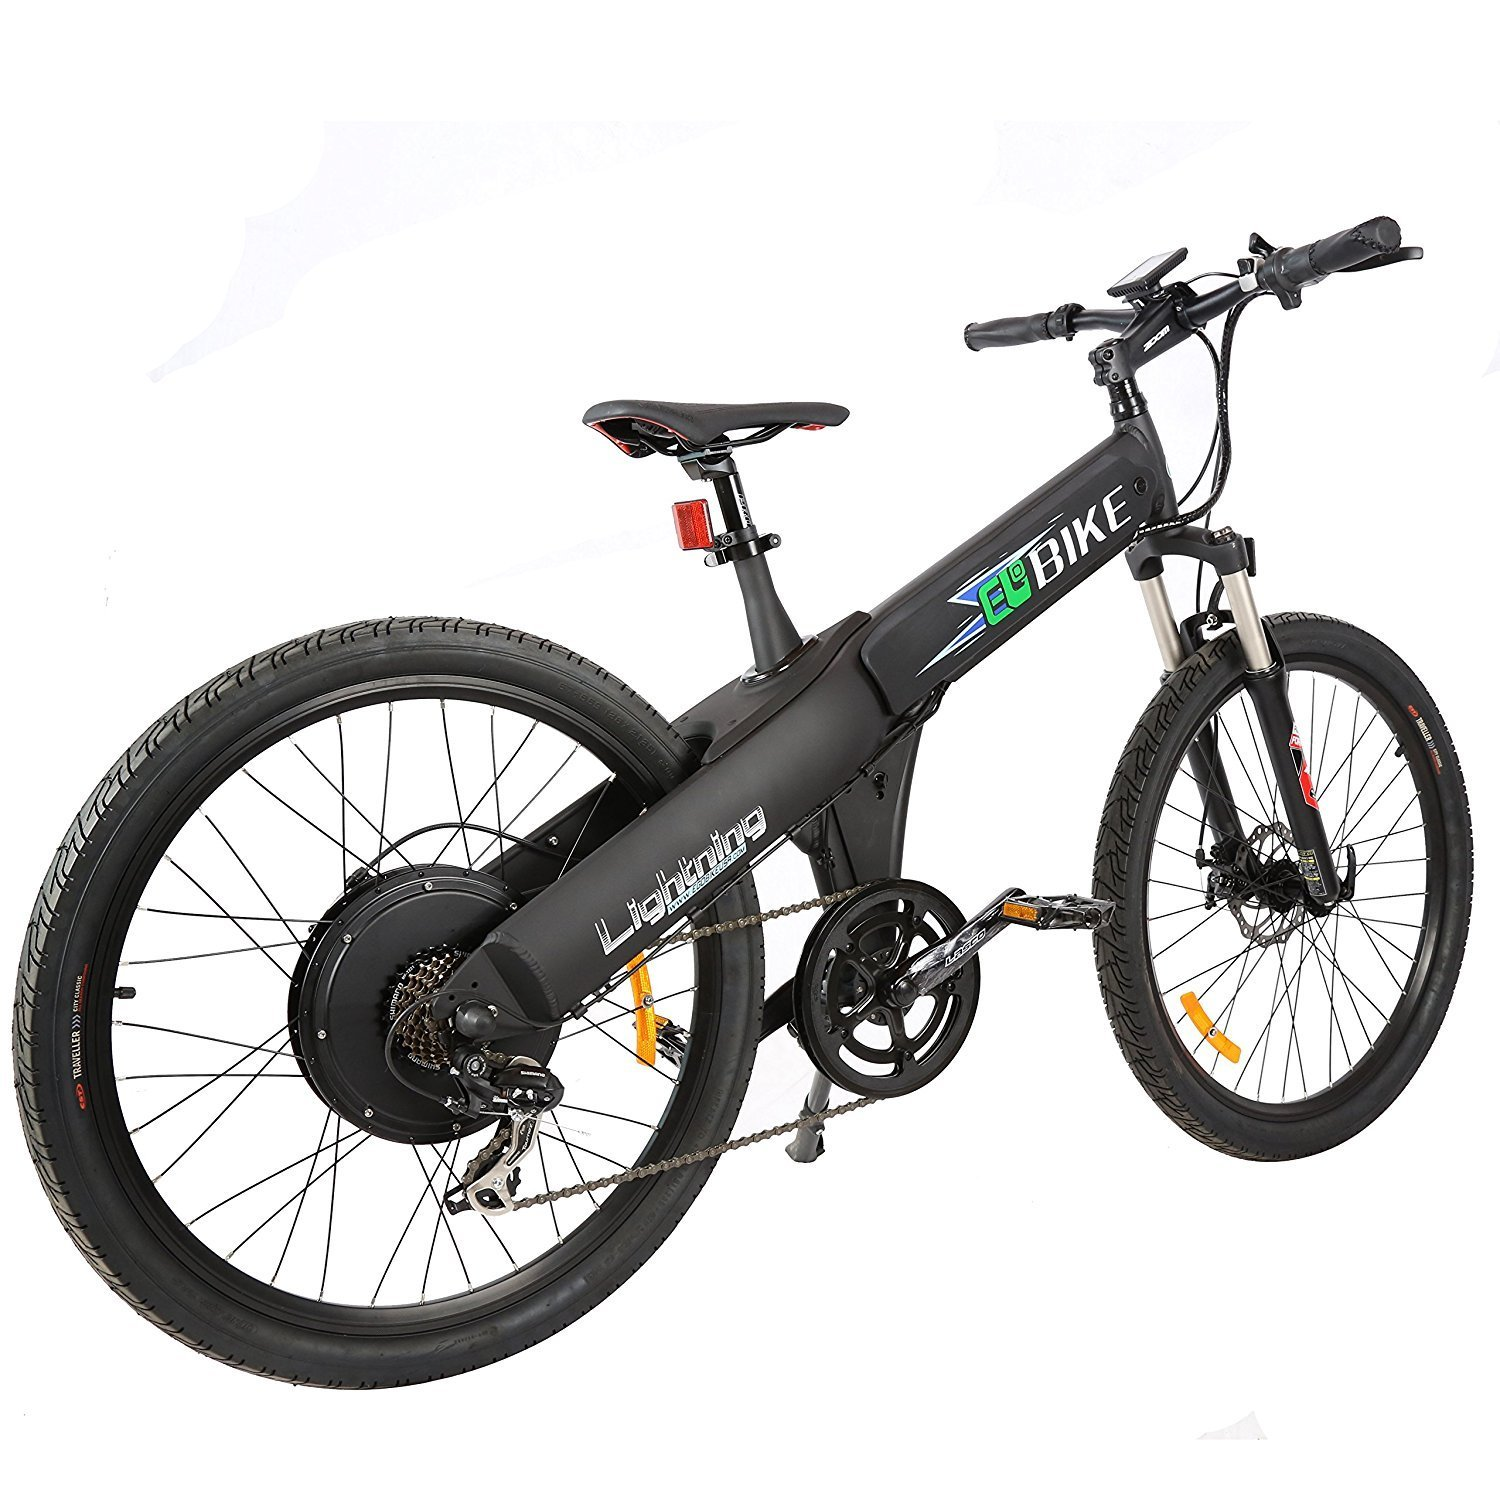 E On Electric E Go Electric Bike Matt Black Electric Bicycle Mountain